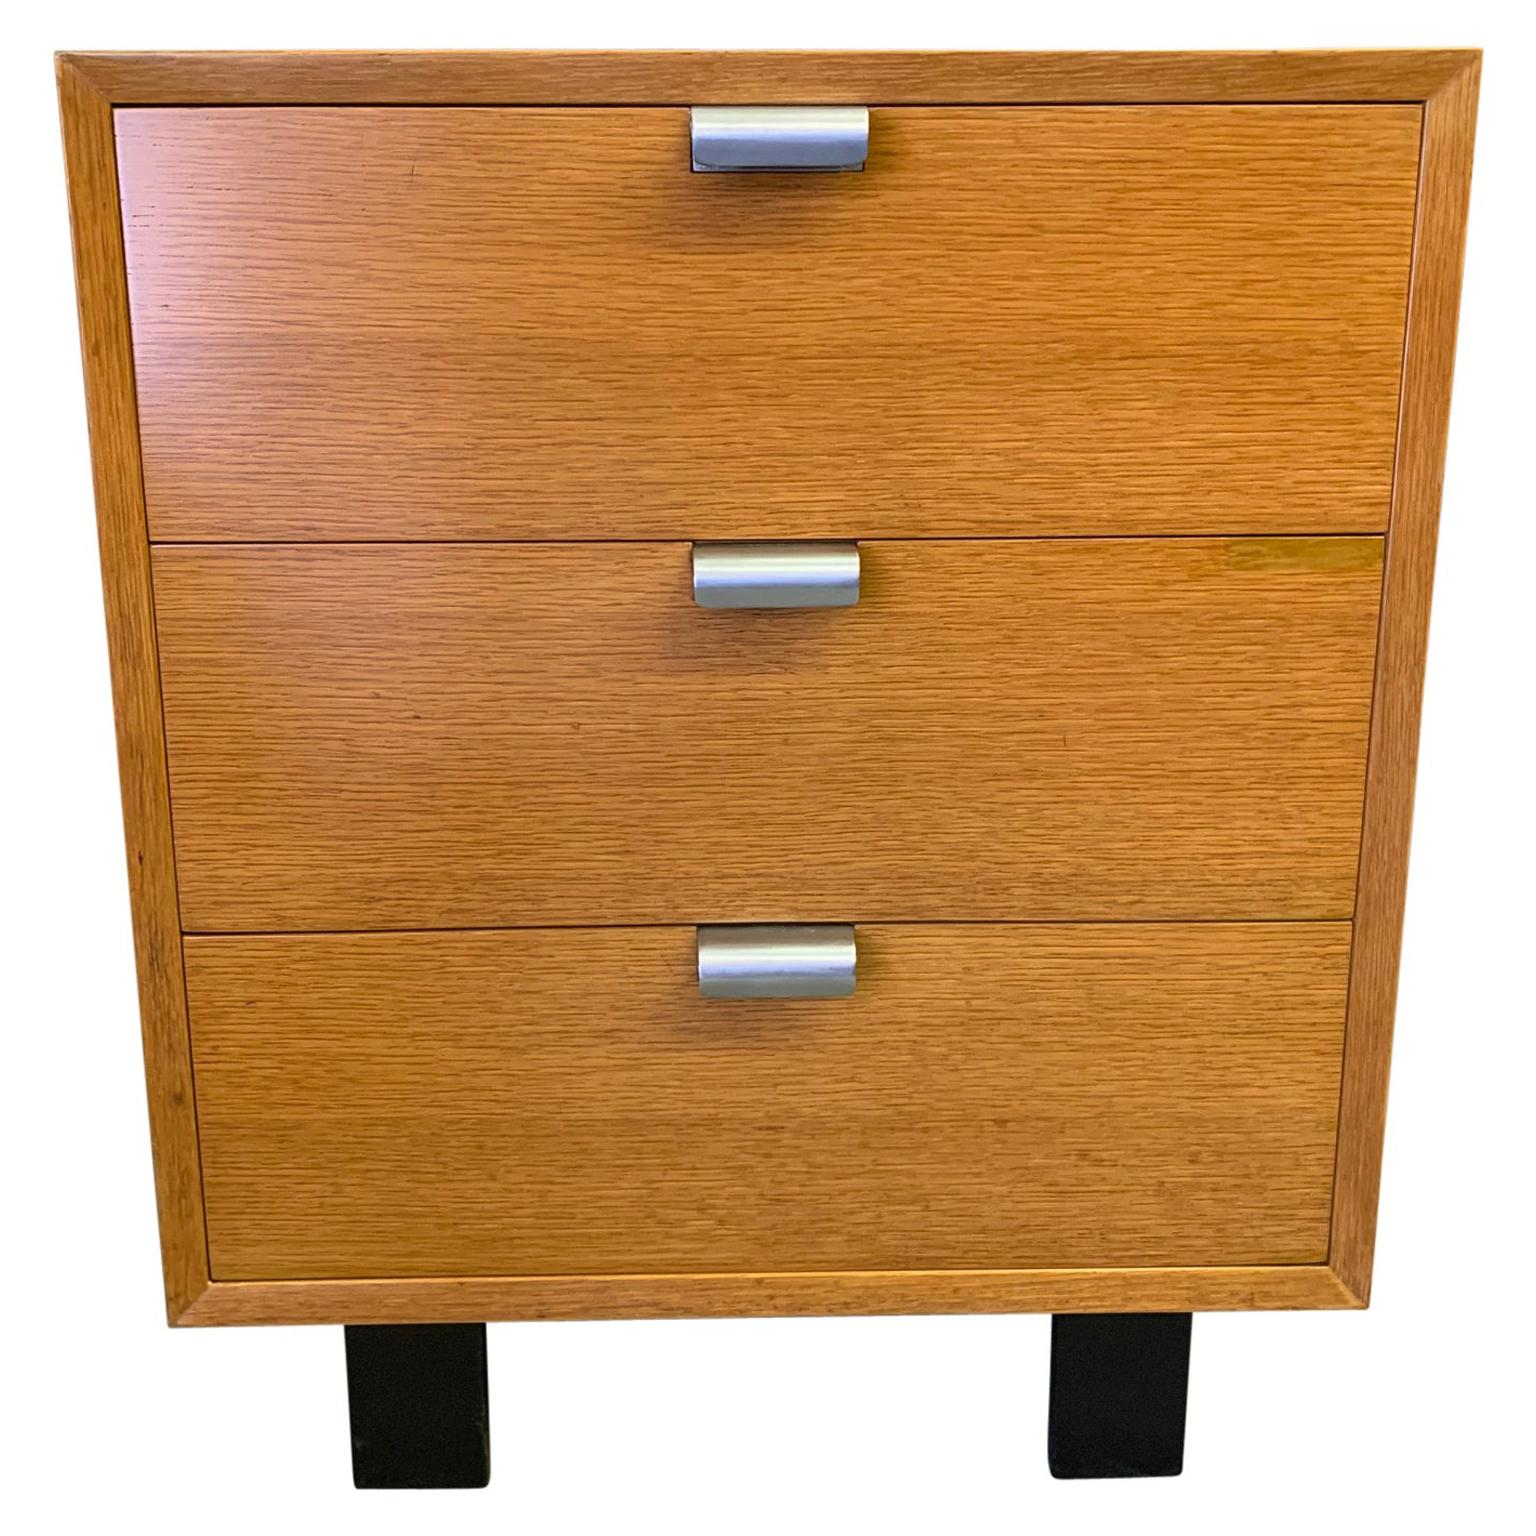 George Nelson for Herman Miller Three-Drawer Wood Chest